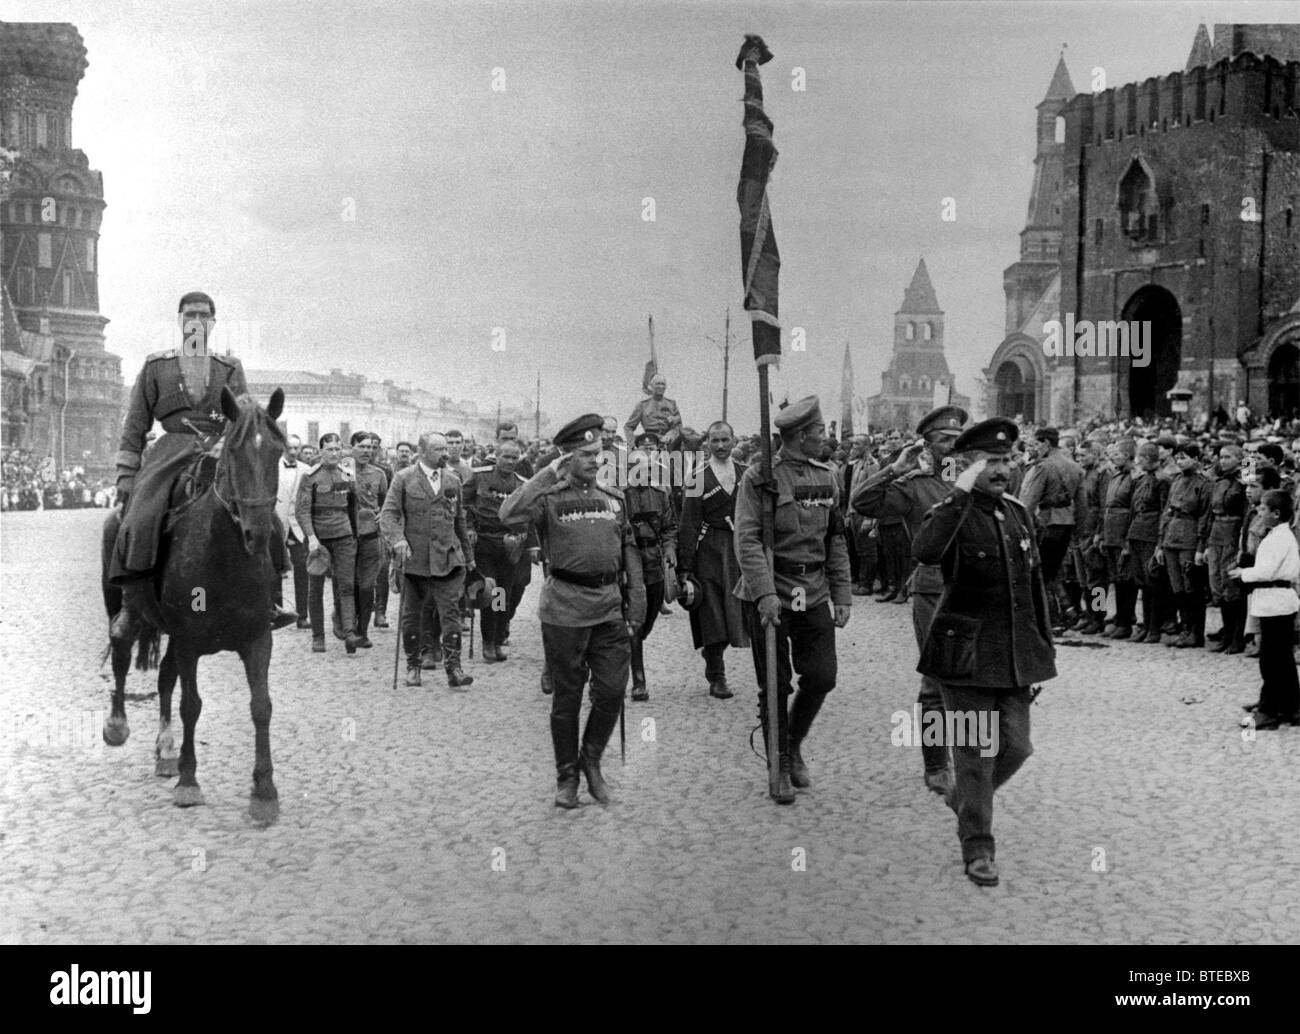 WWI. Russian troops sent to the front. 1917. - Stock Image